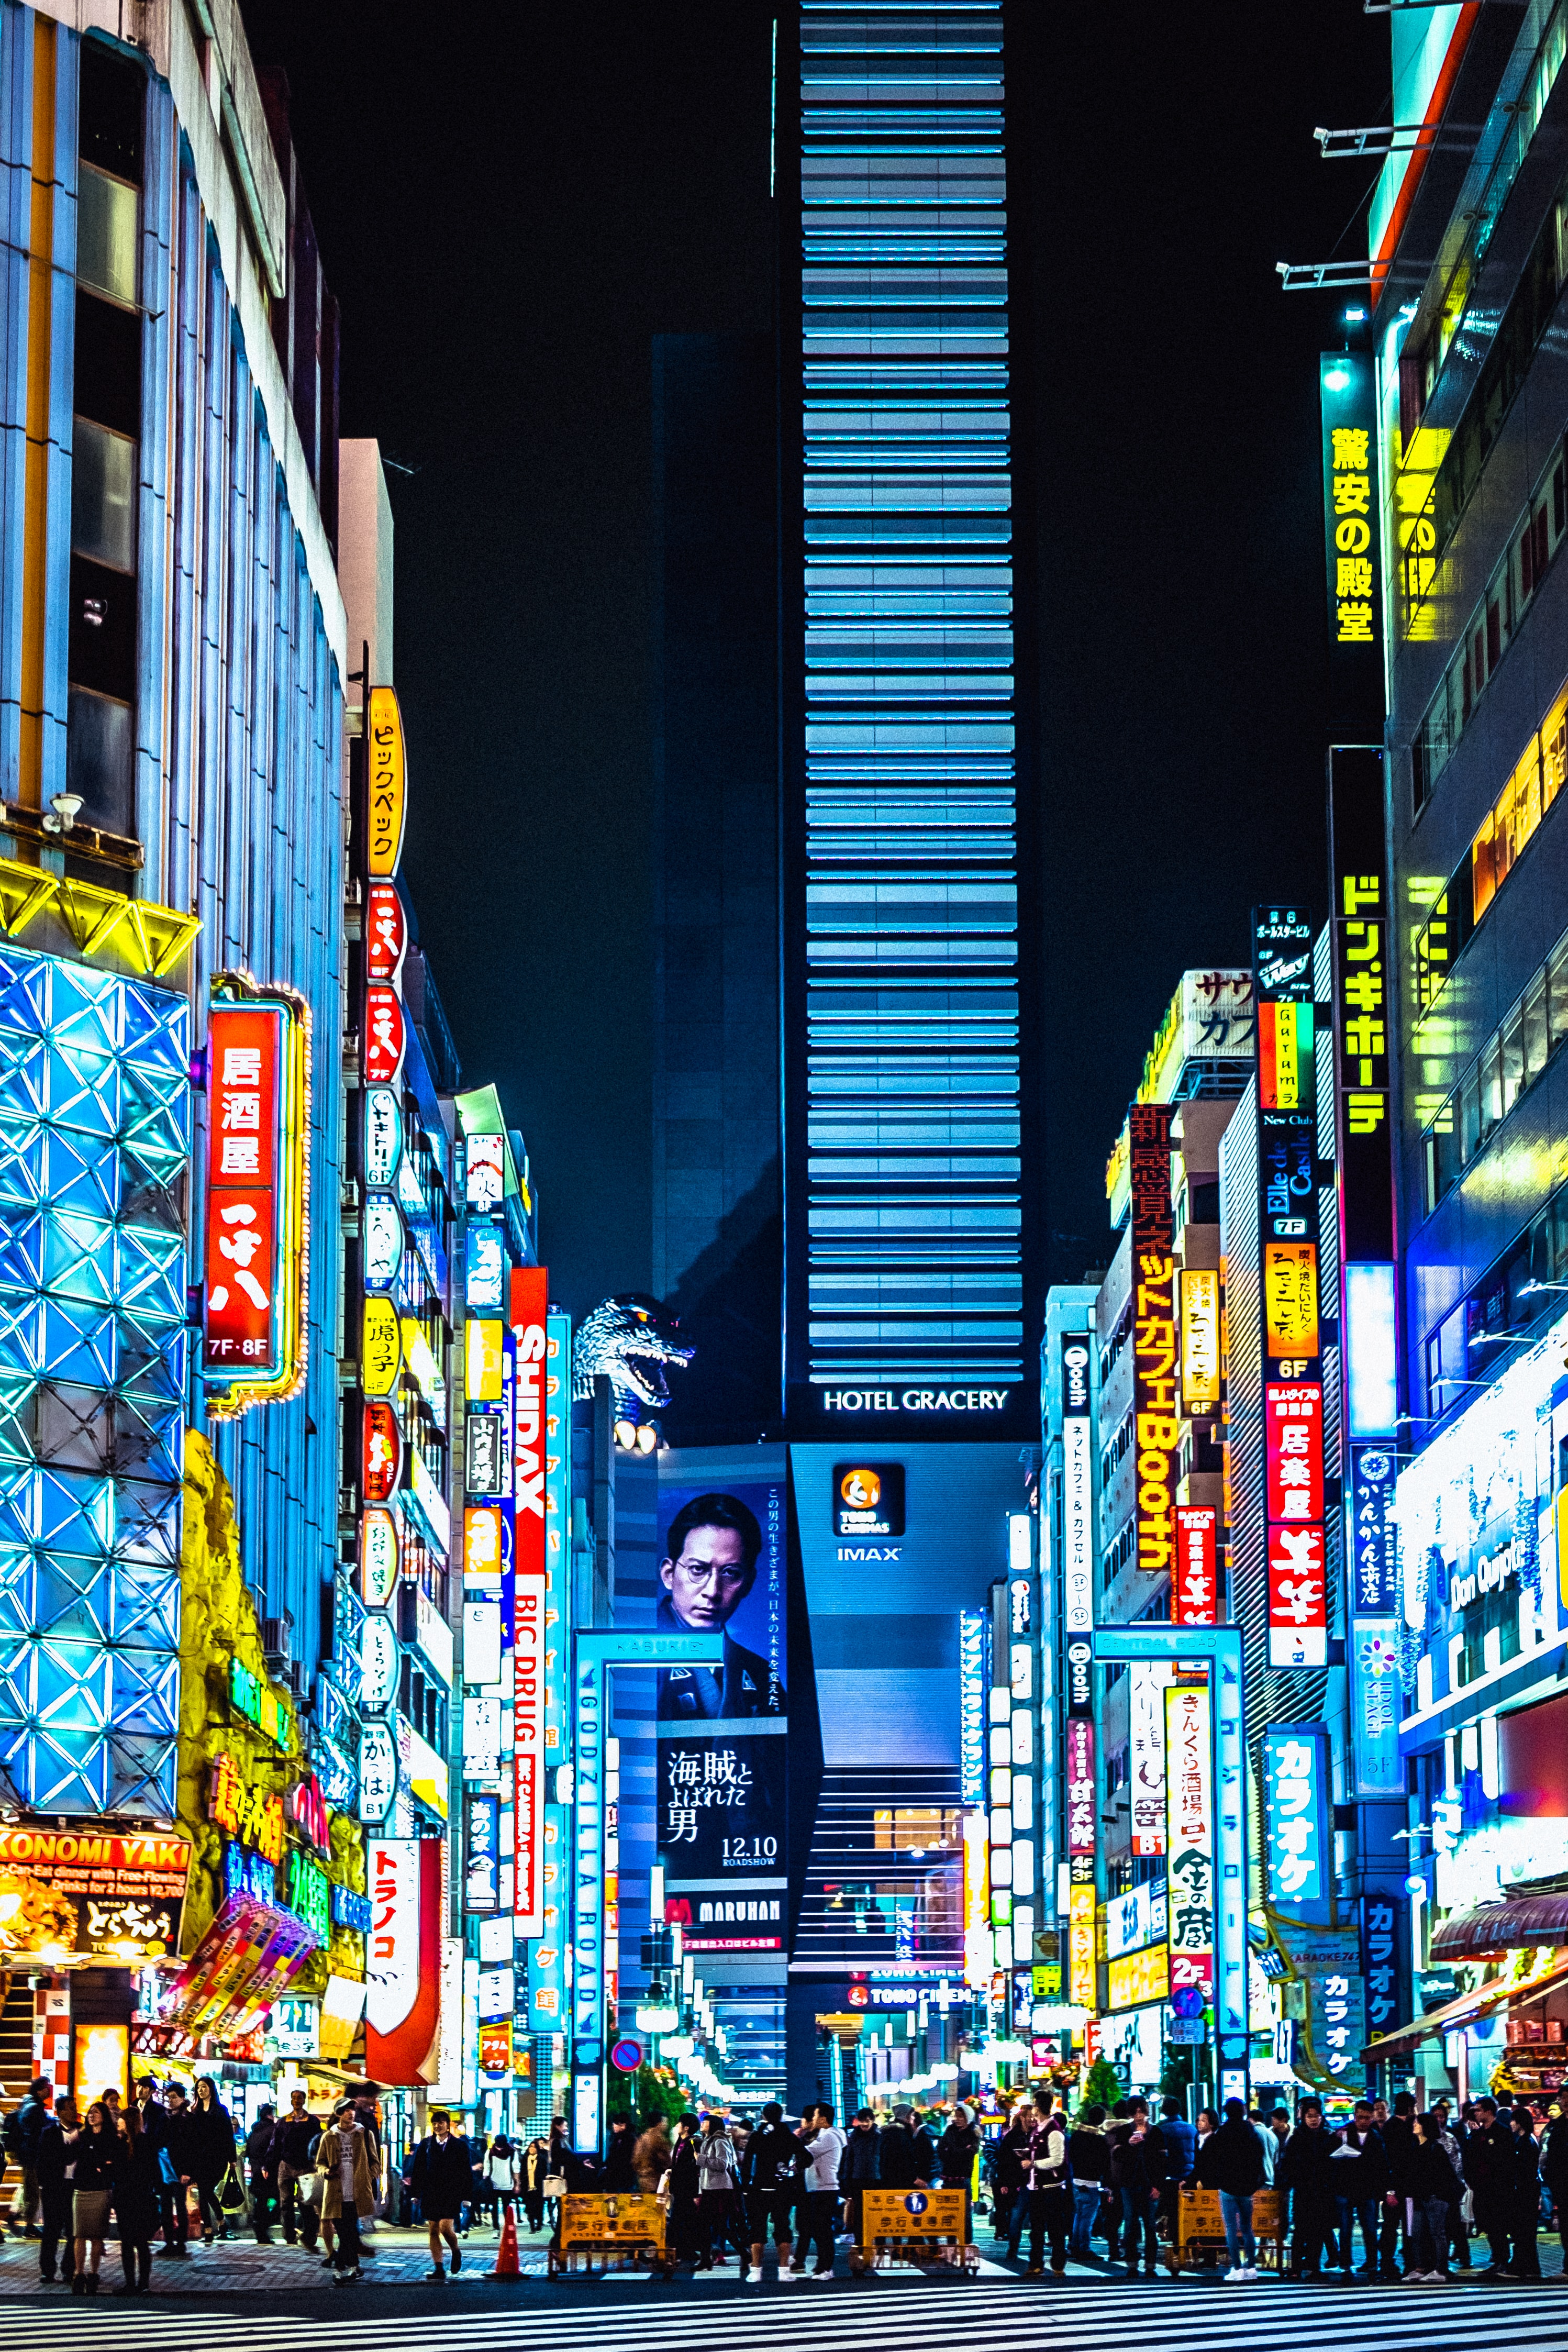 Tokyo Pictures Scenic Travel Photos Download Free Images on